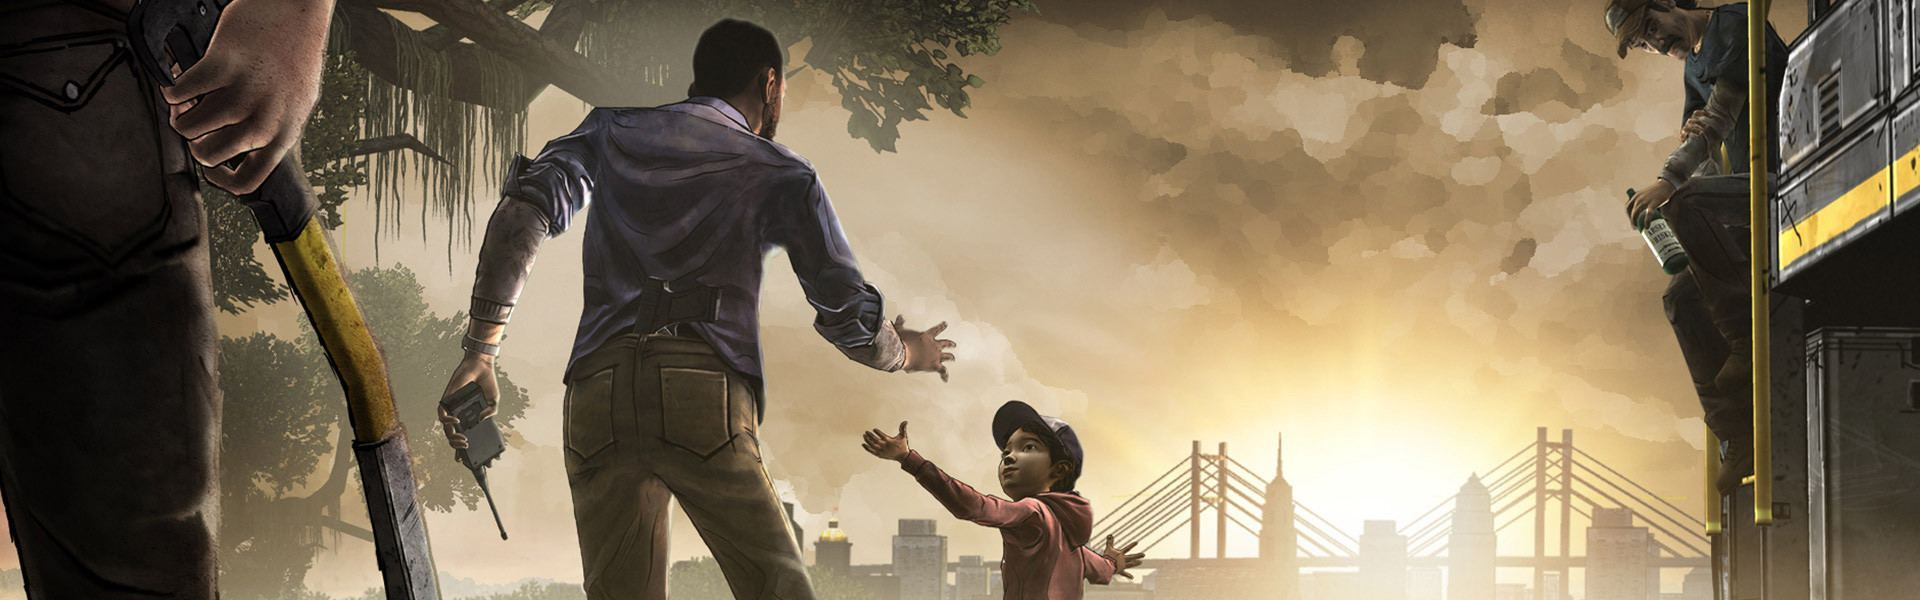 The Walking Dead: Season 1 Steam Key GLOBAL